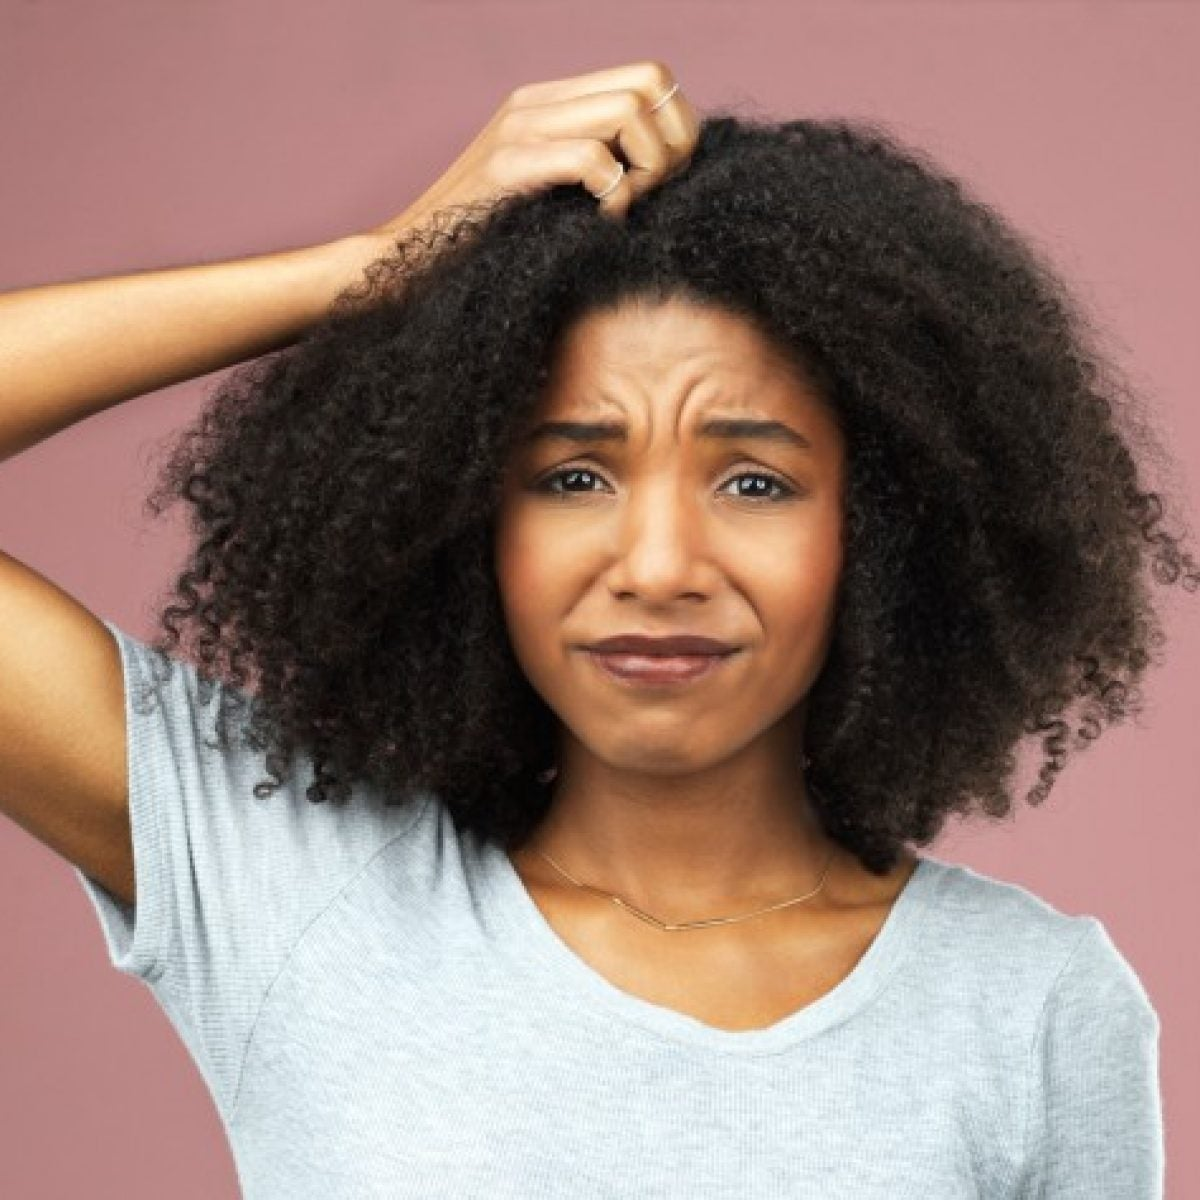 Losing Your Hair? This Is Why You Need A Scalp Analysis